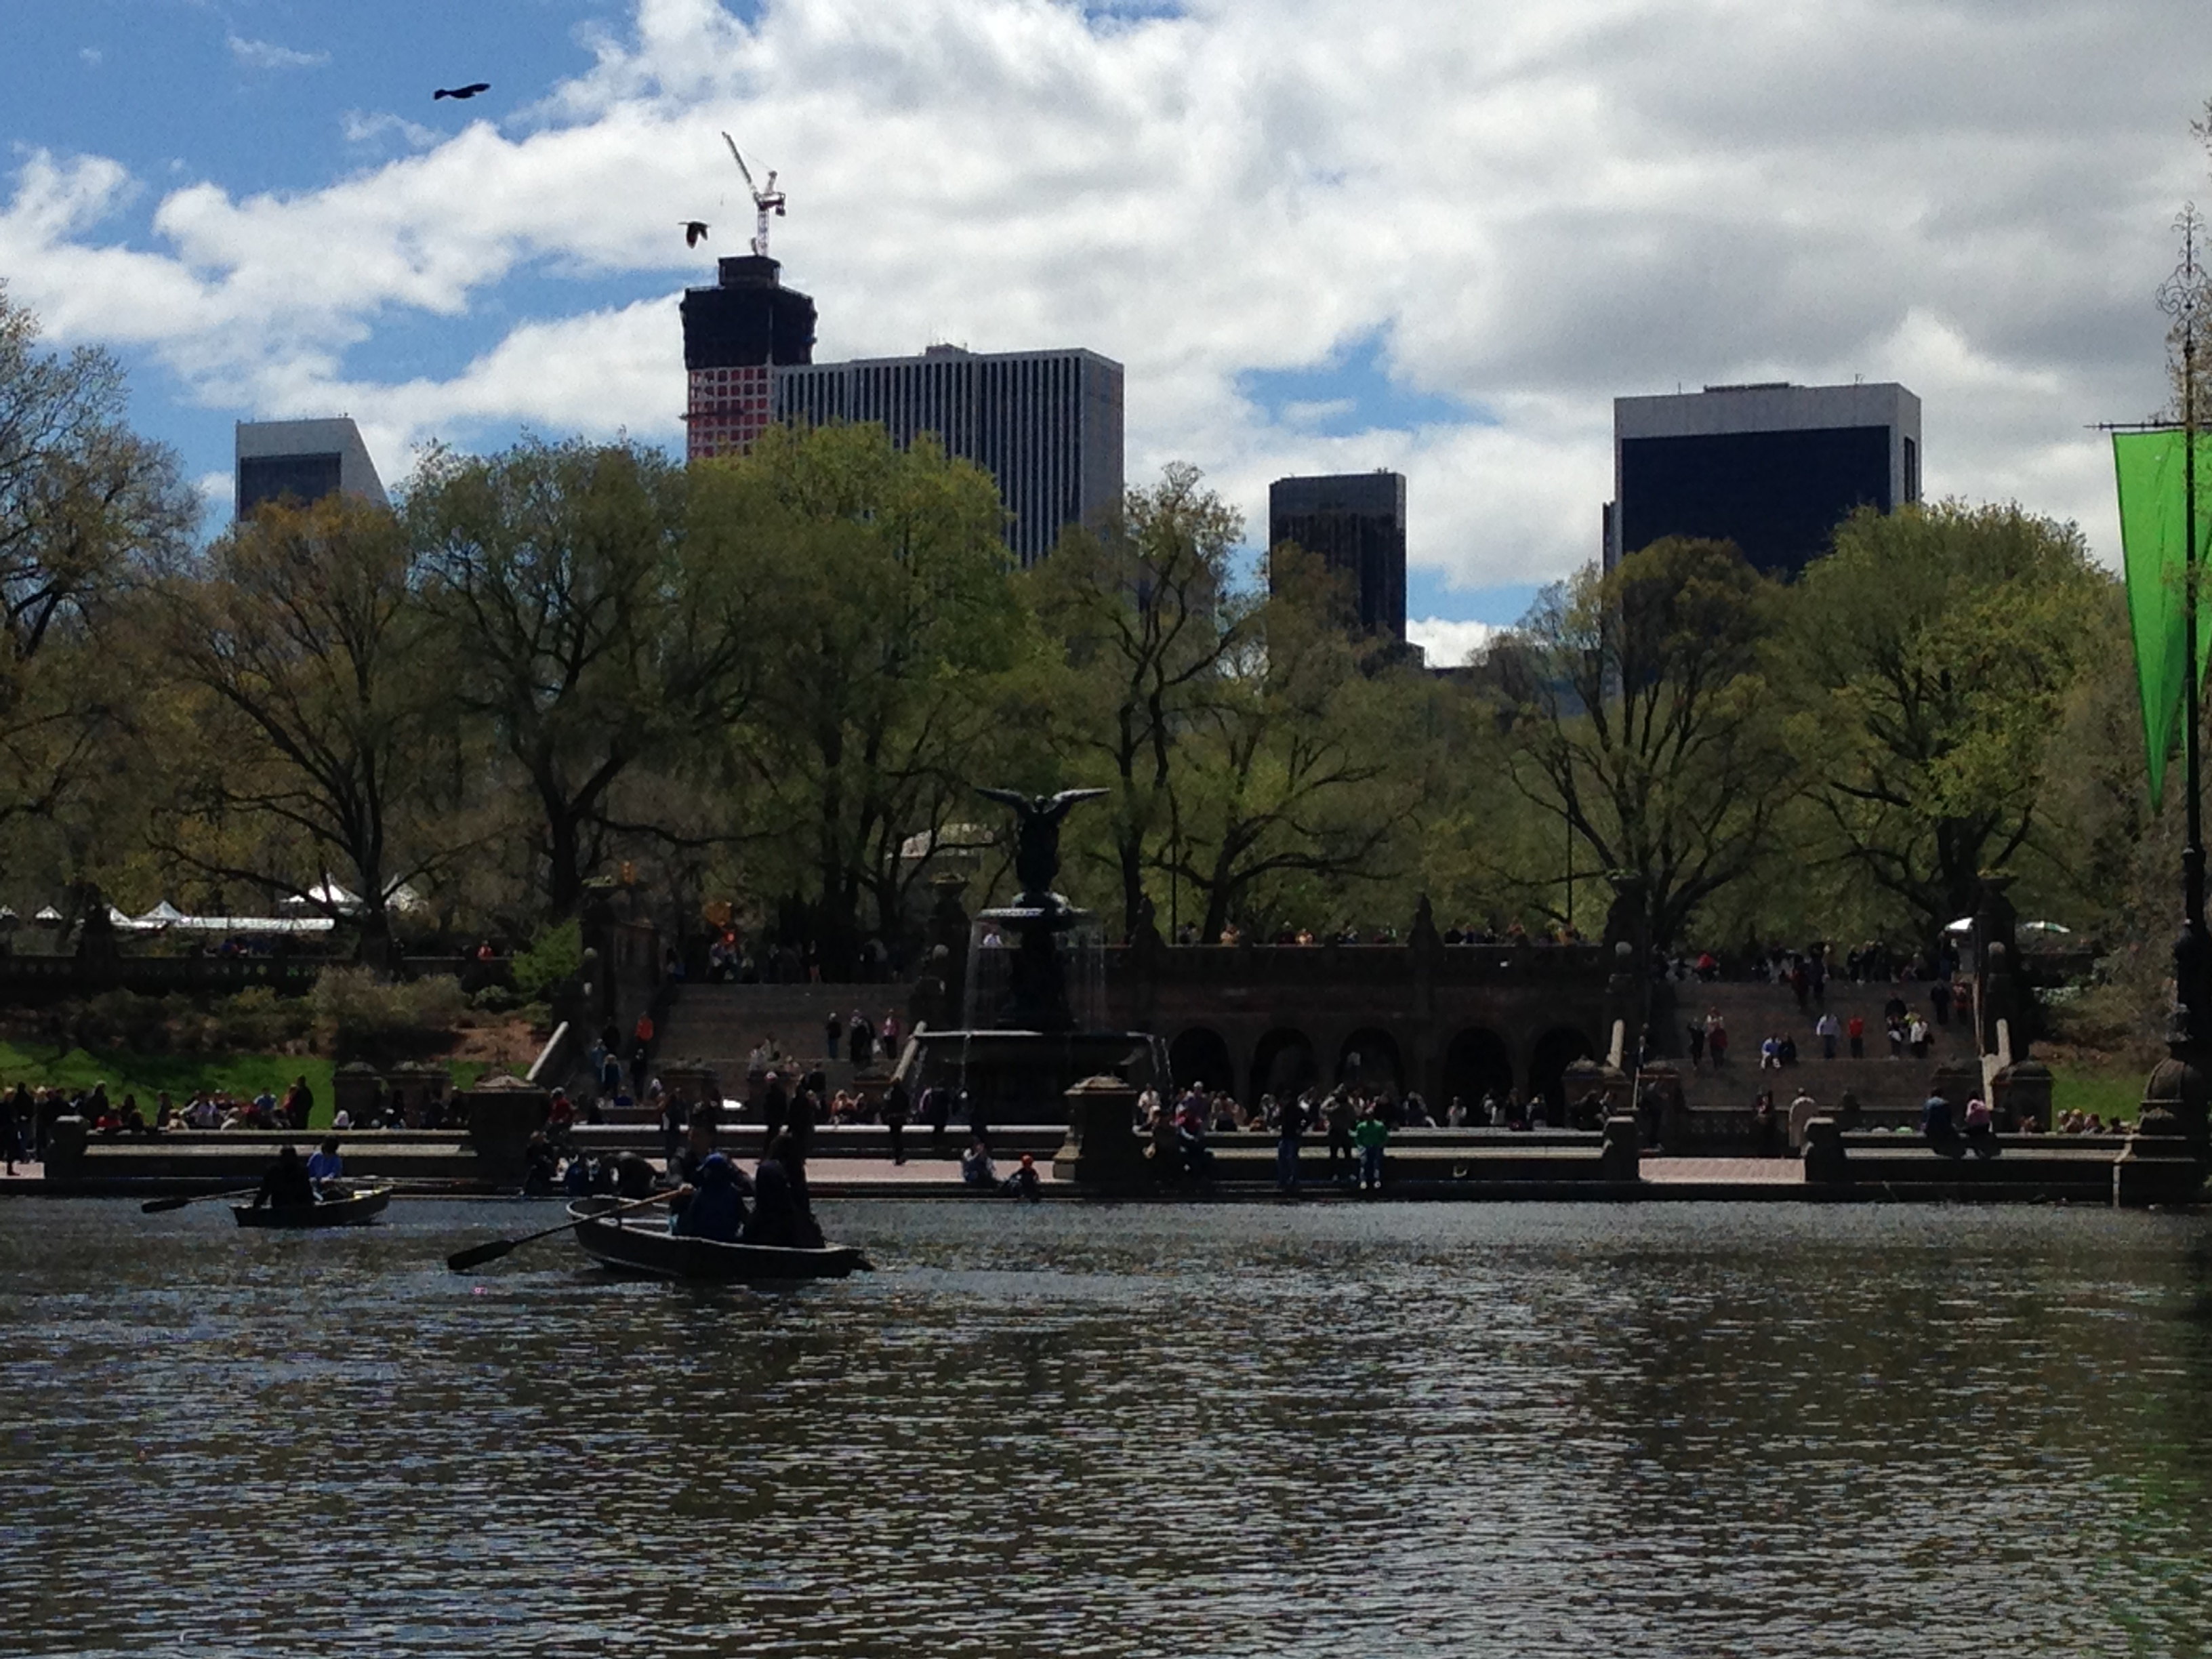 Fun for Families in New York City: Rent Rowboats in Central Park